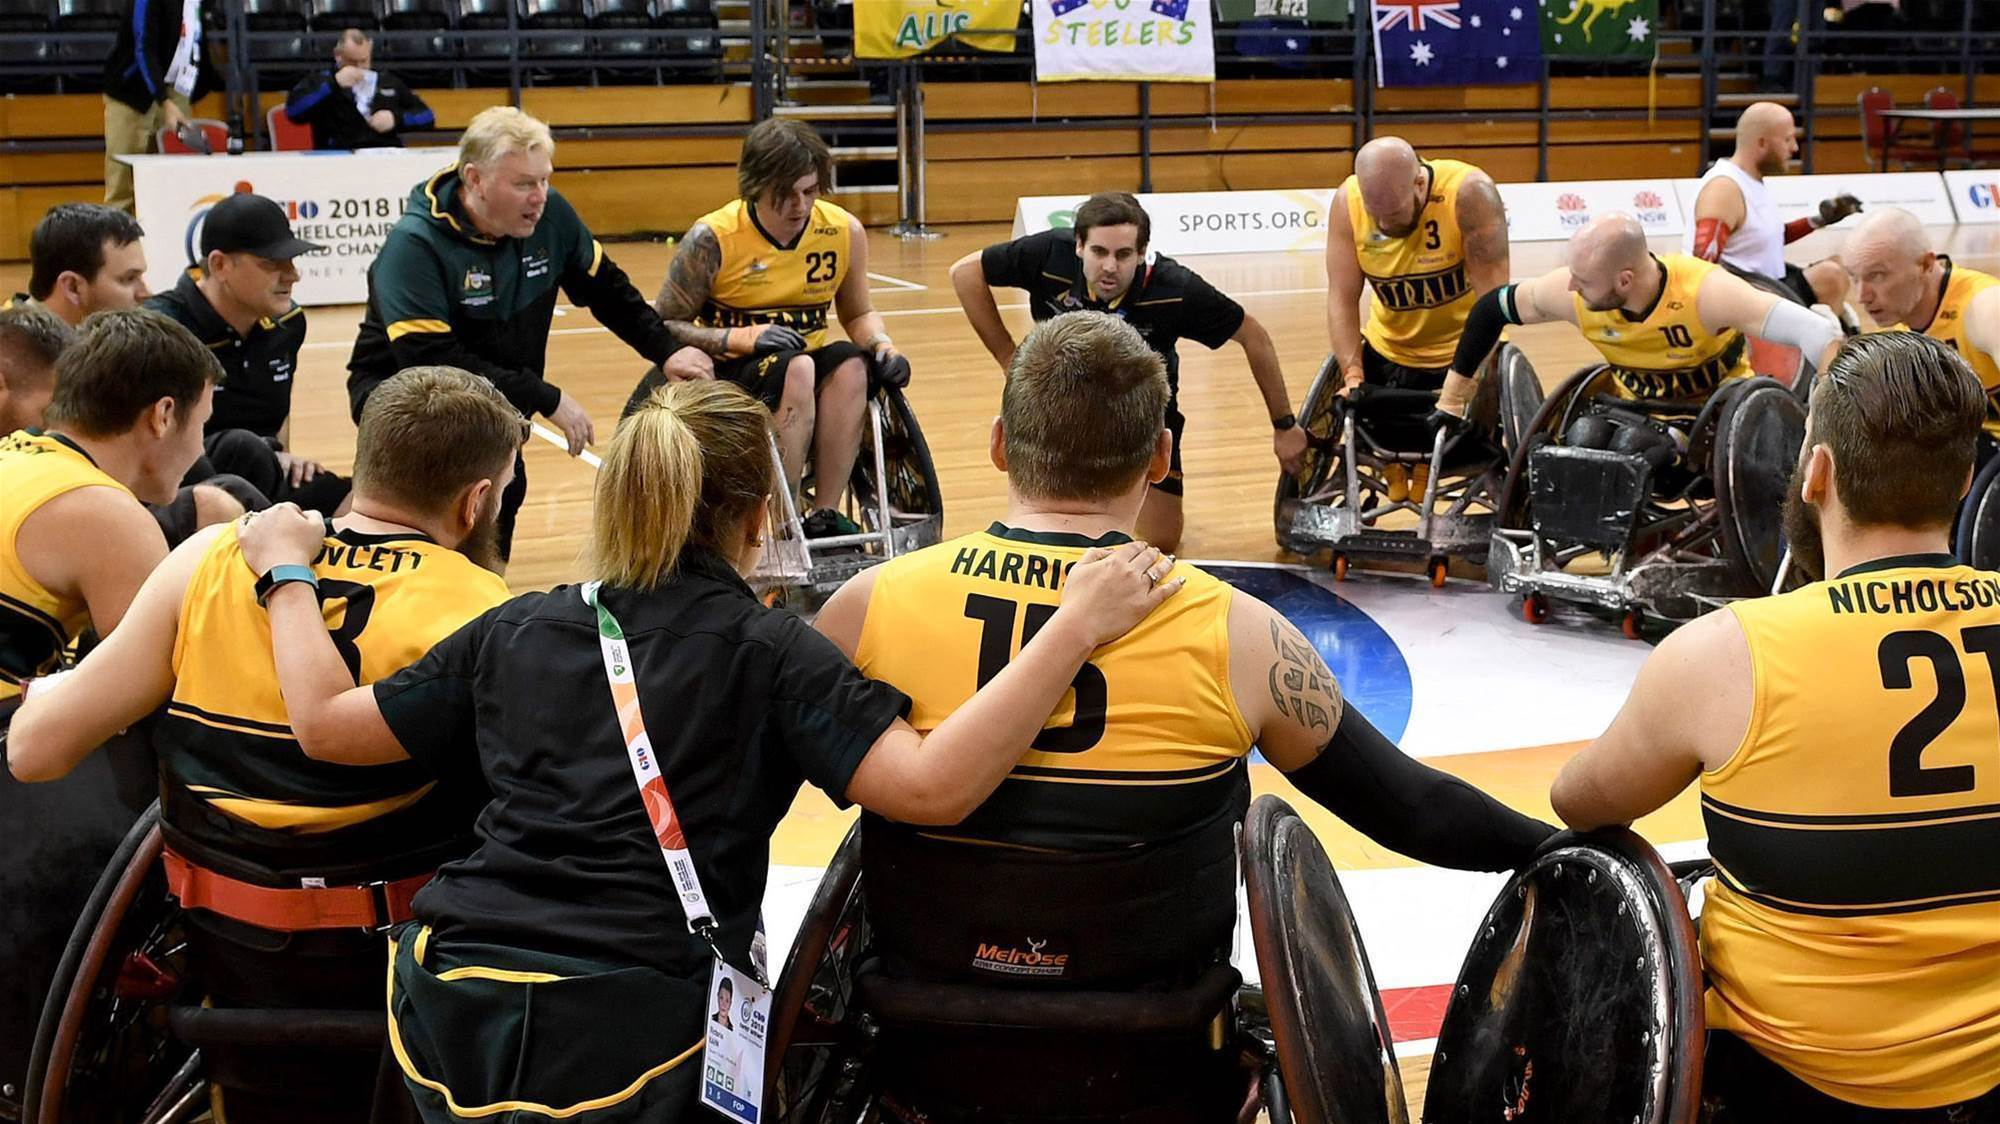 Graham makes history in wheelchair rugby